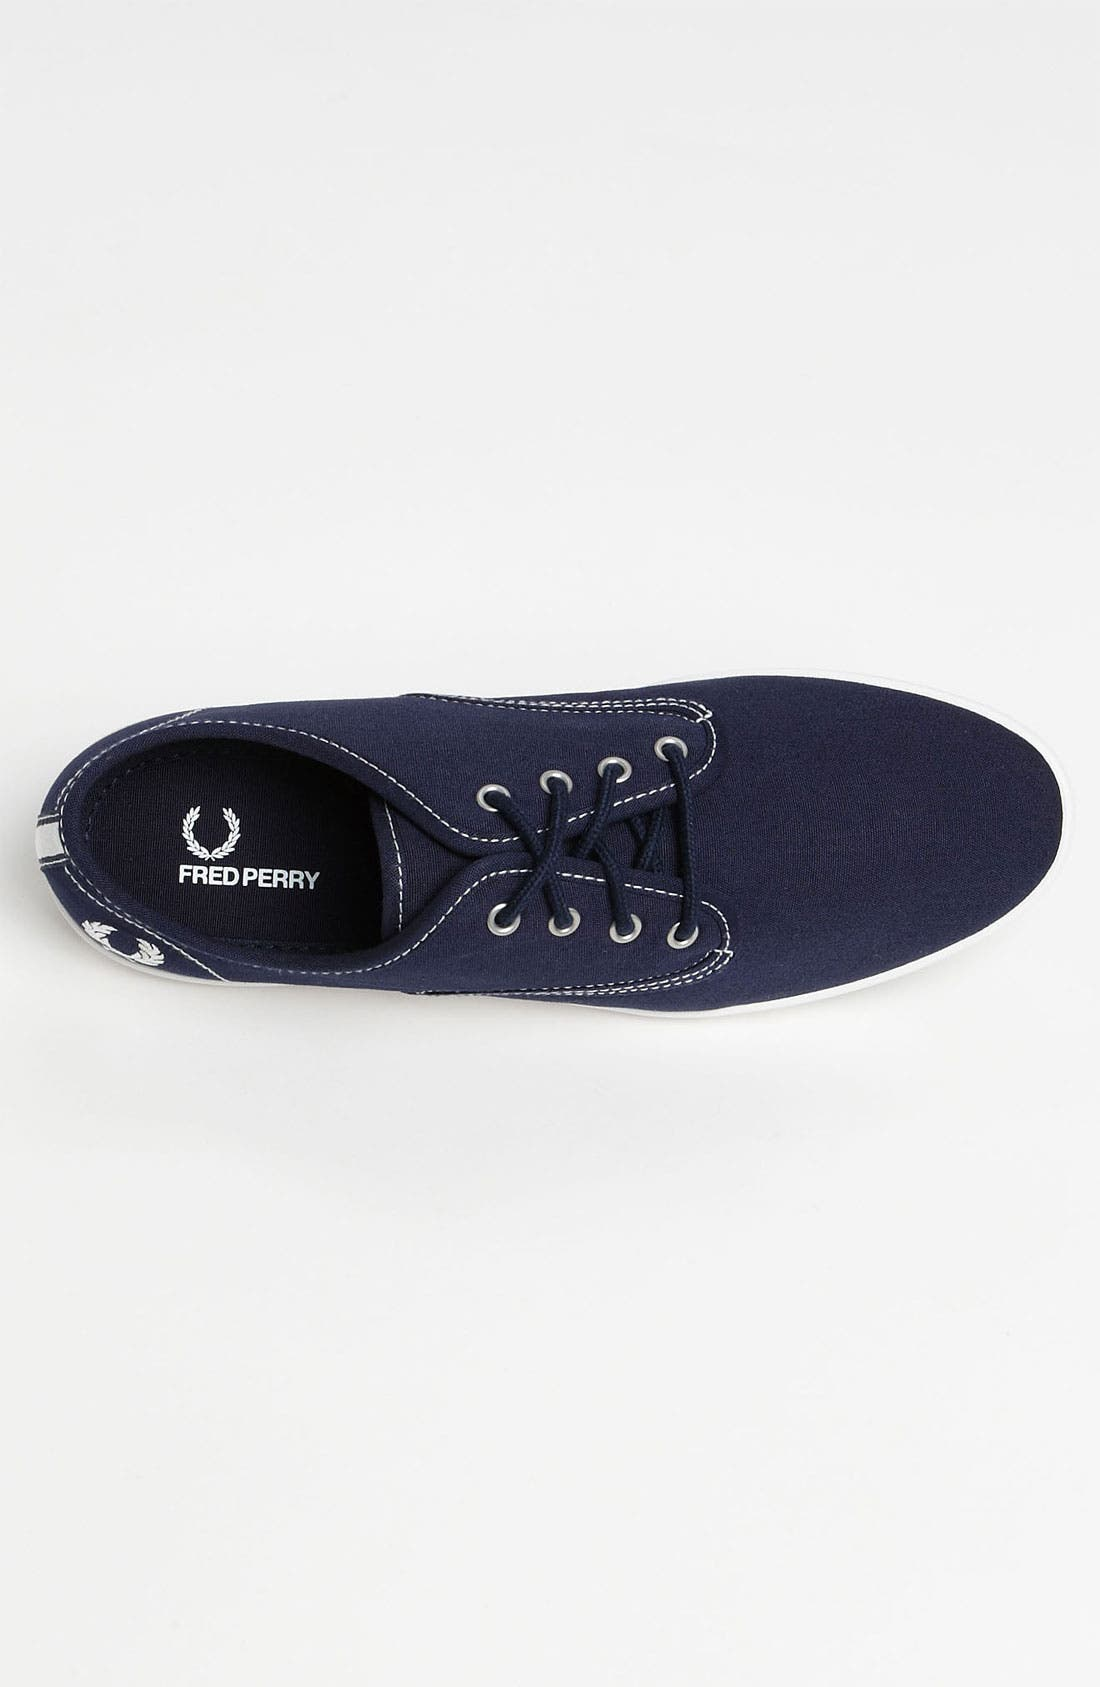 Alternate Image 3  - Fred Perry 'Foxx' Sneaker